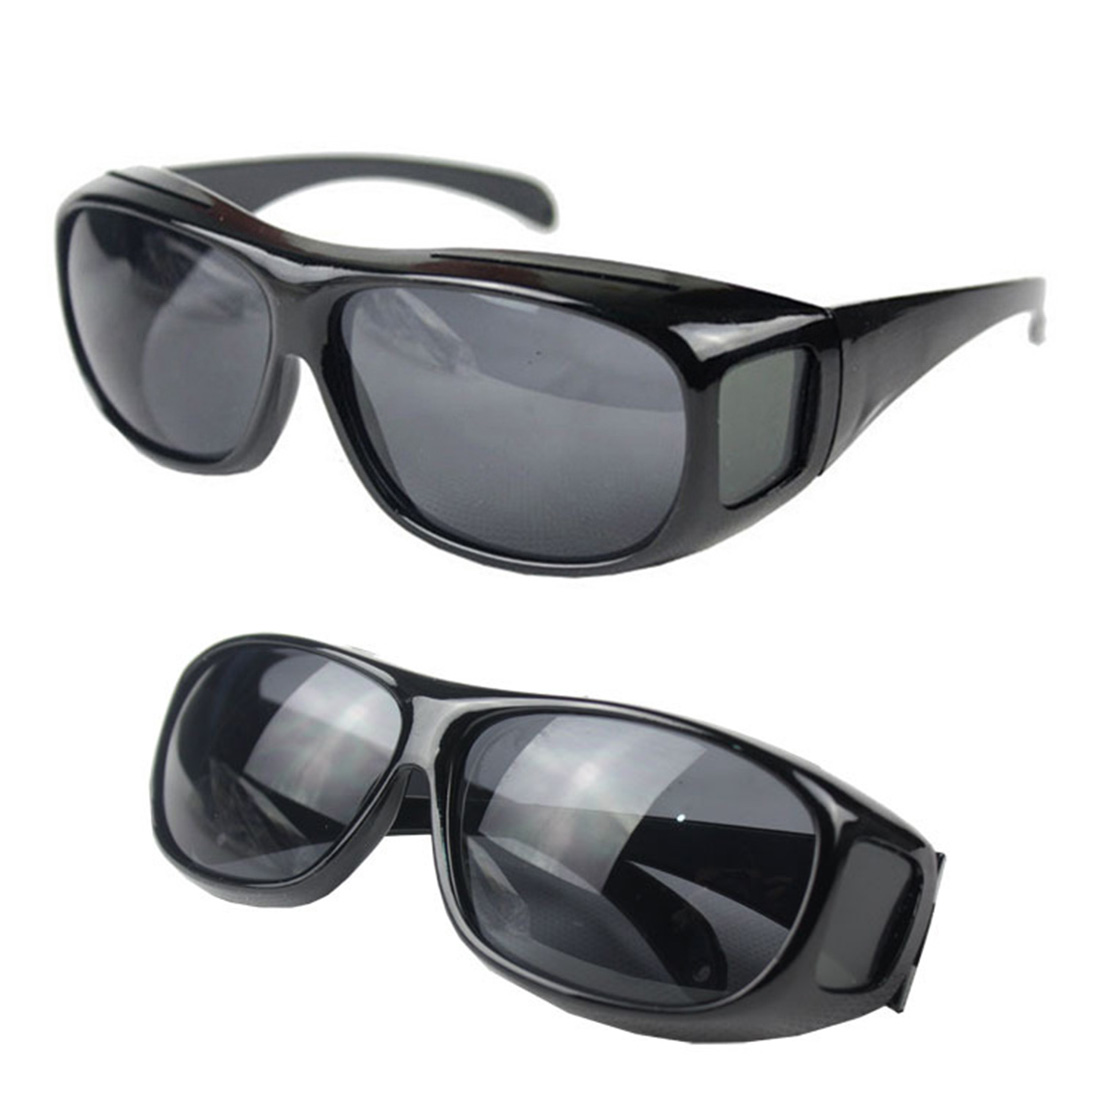 3486d1155b0 Details about Unisex HD Vision Driving Sunglasses Wrap Around Glasses As  Seen TV Anti Glare UV